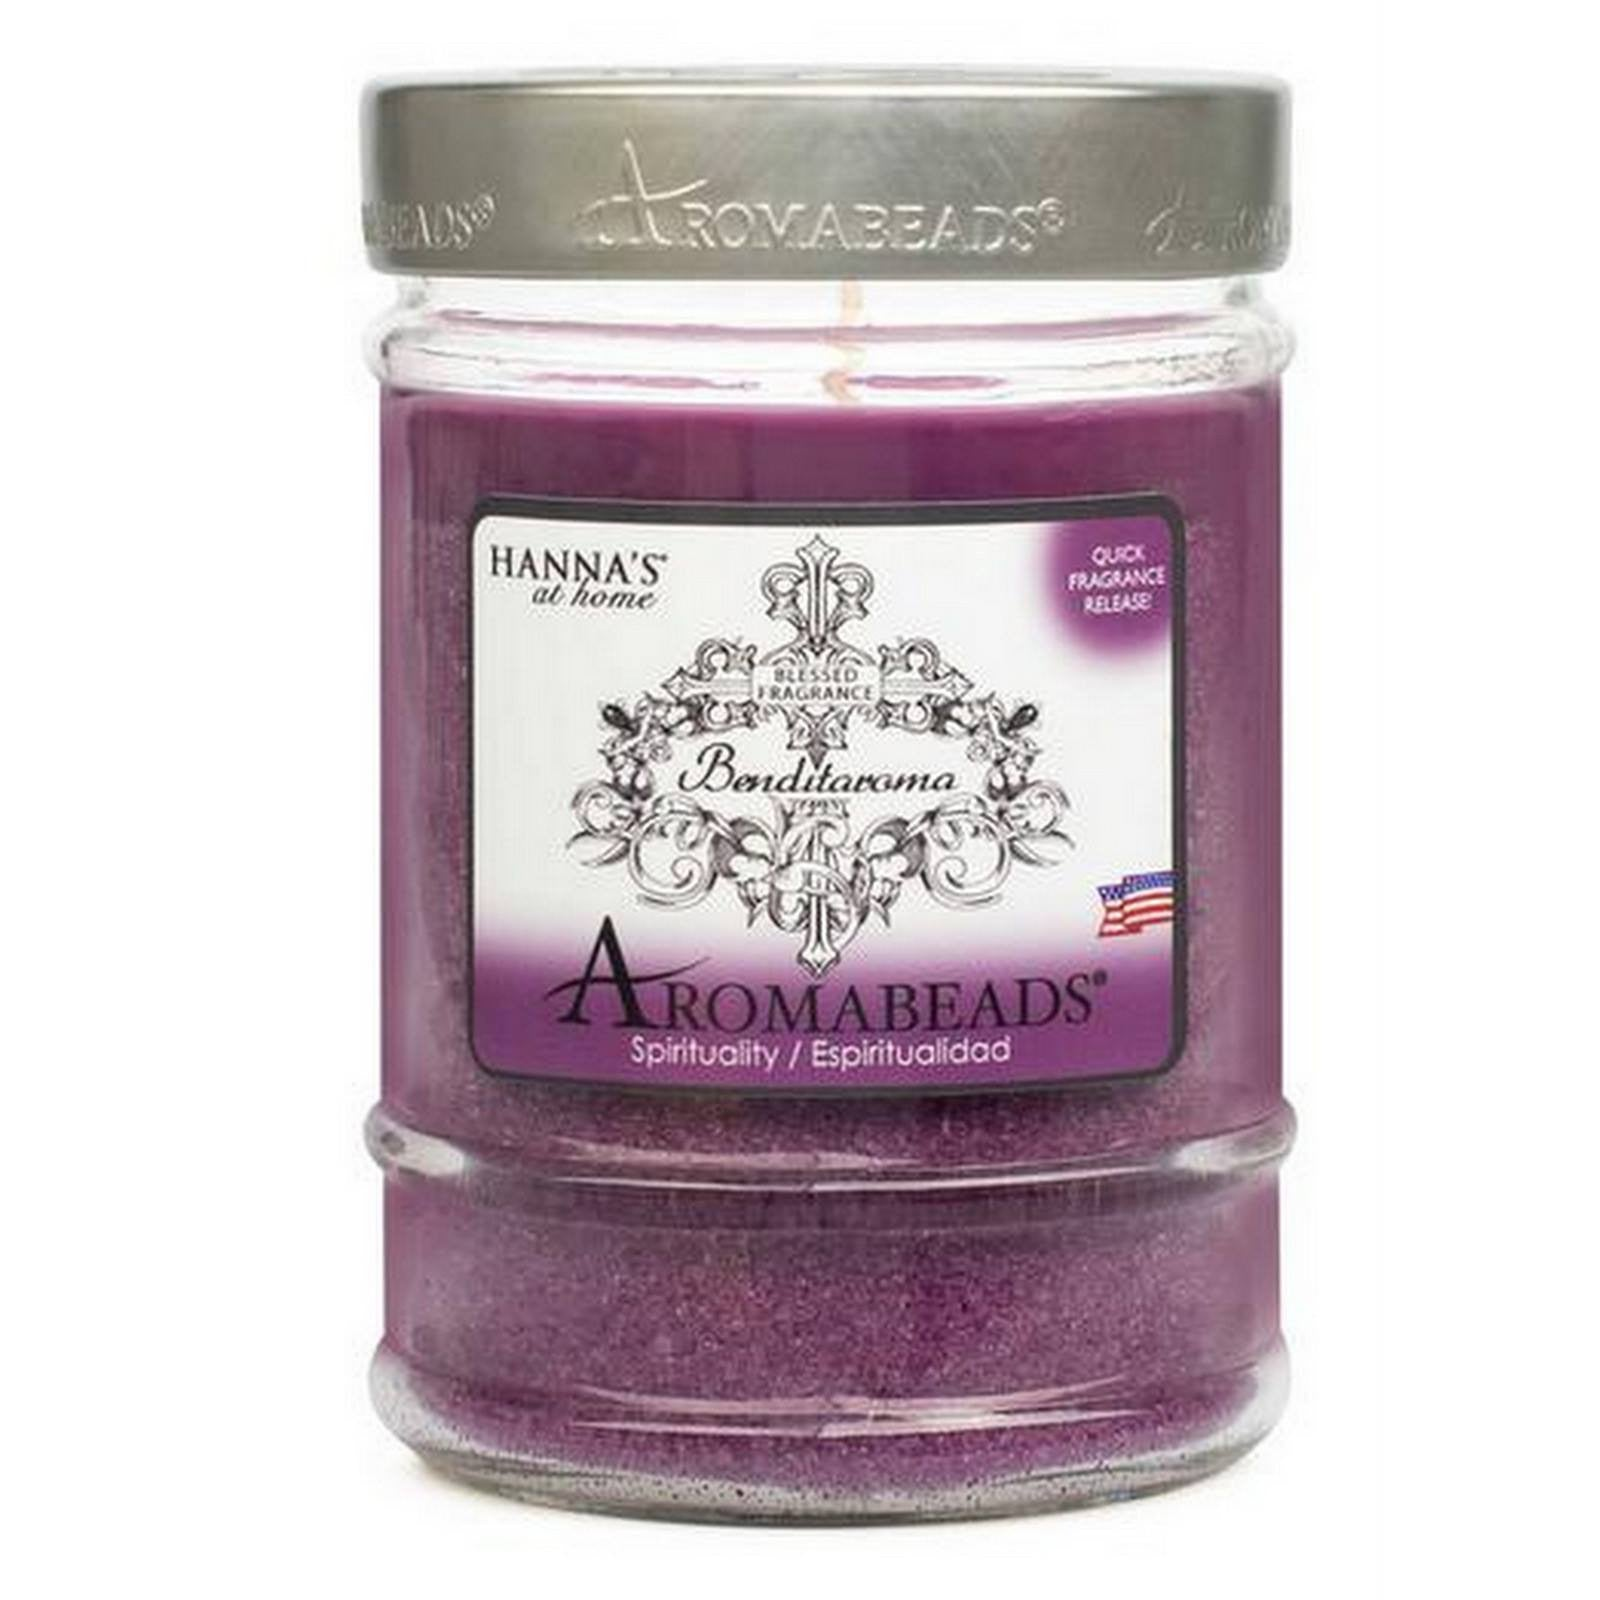 Benditaroma Aromabeads Spirituality Scented Canister Candle - Candlemart.com